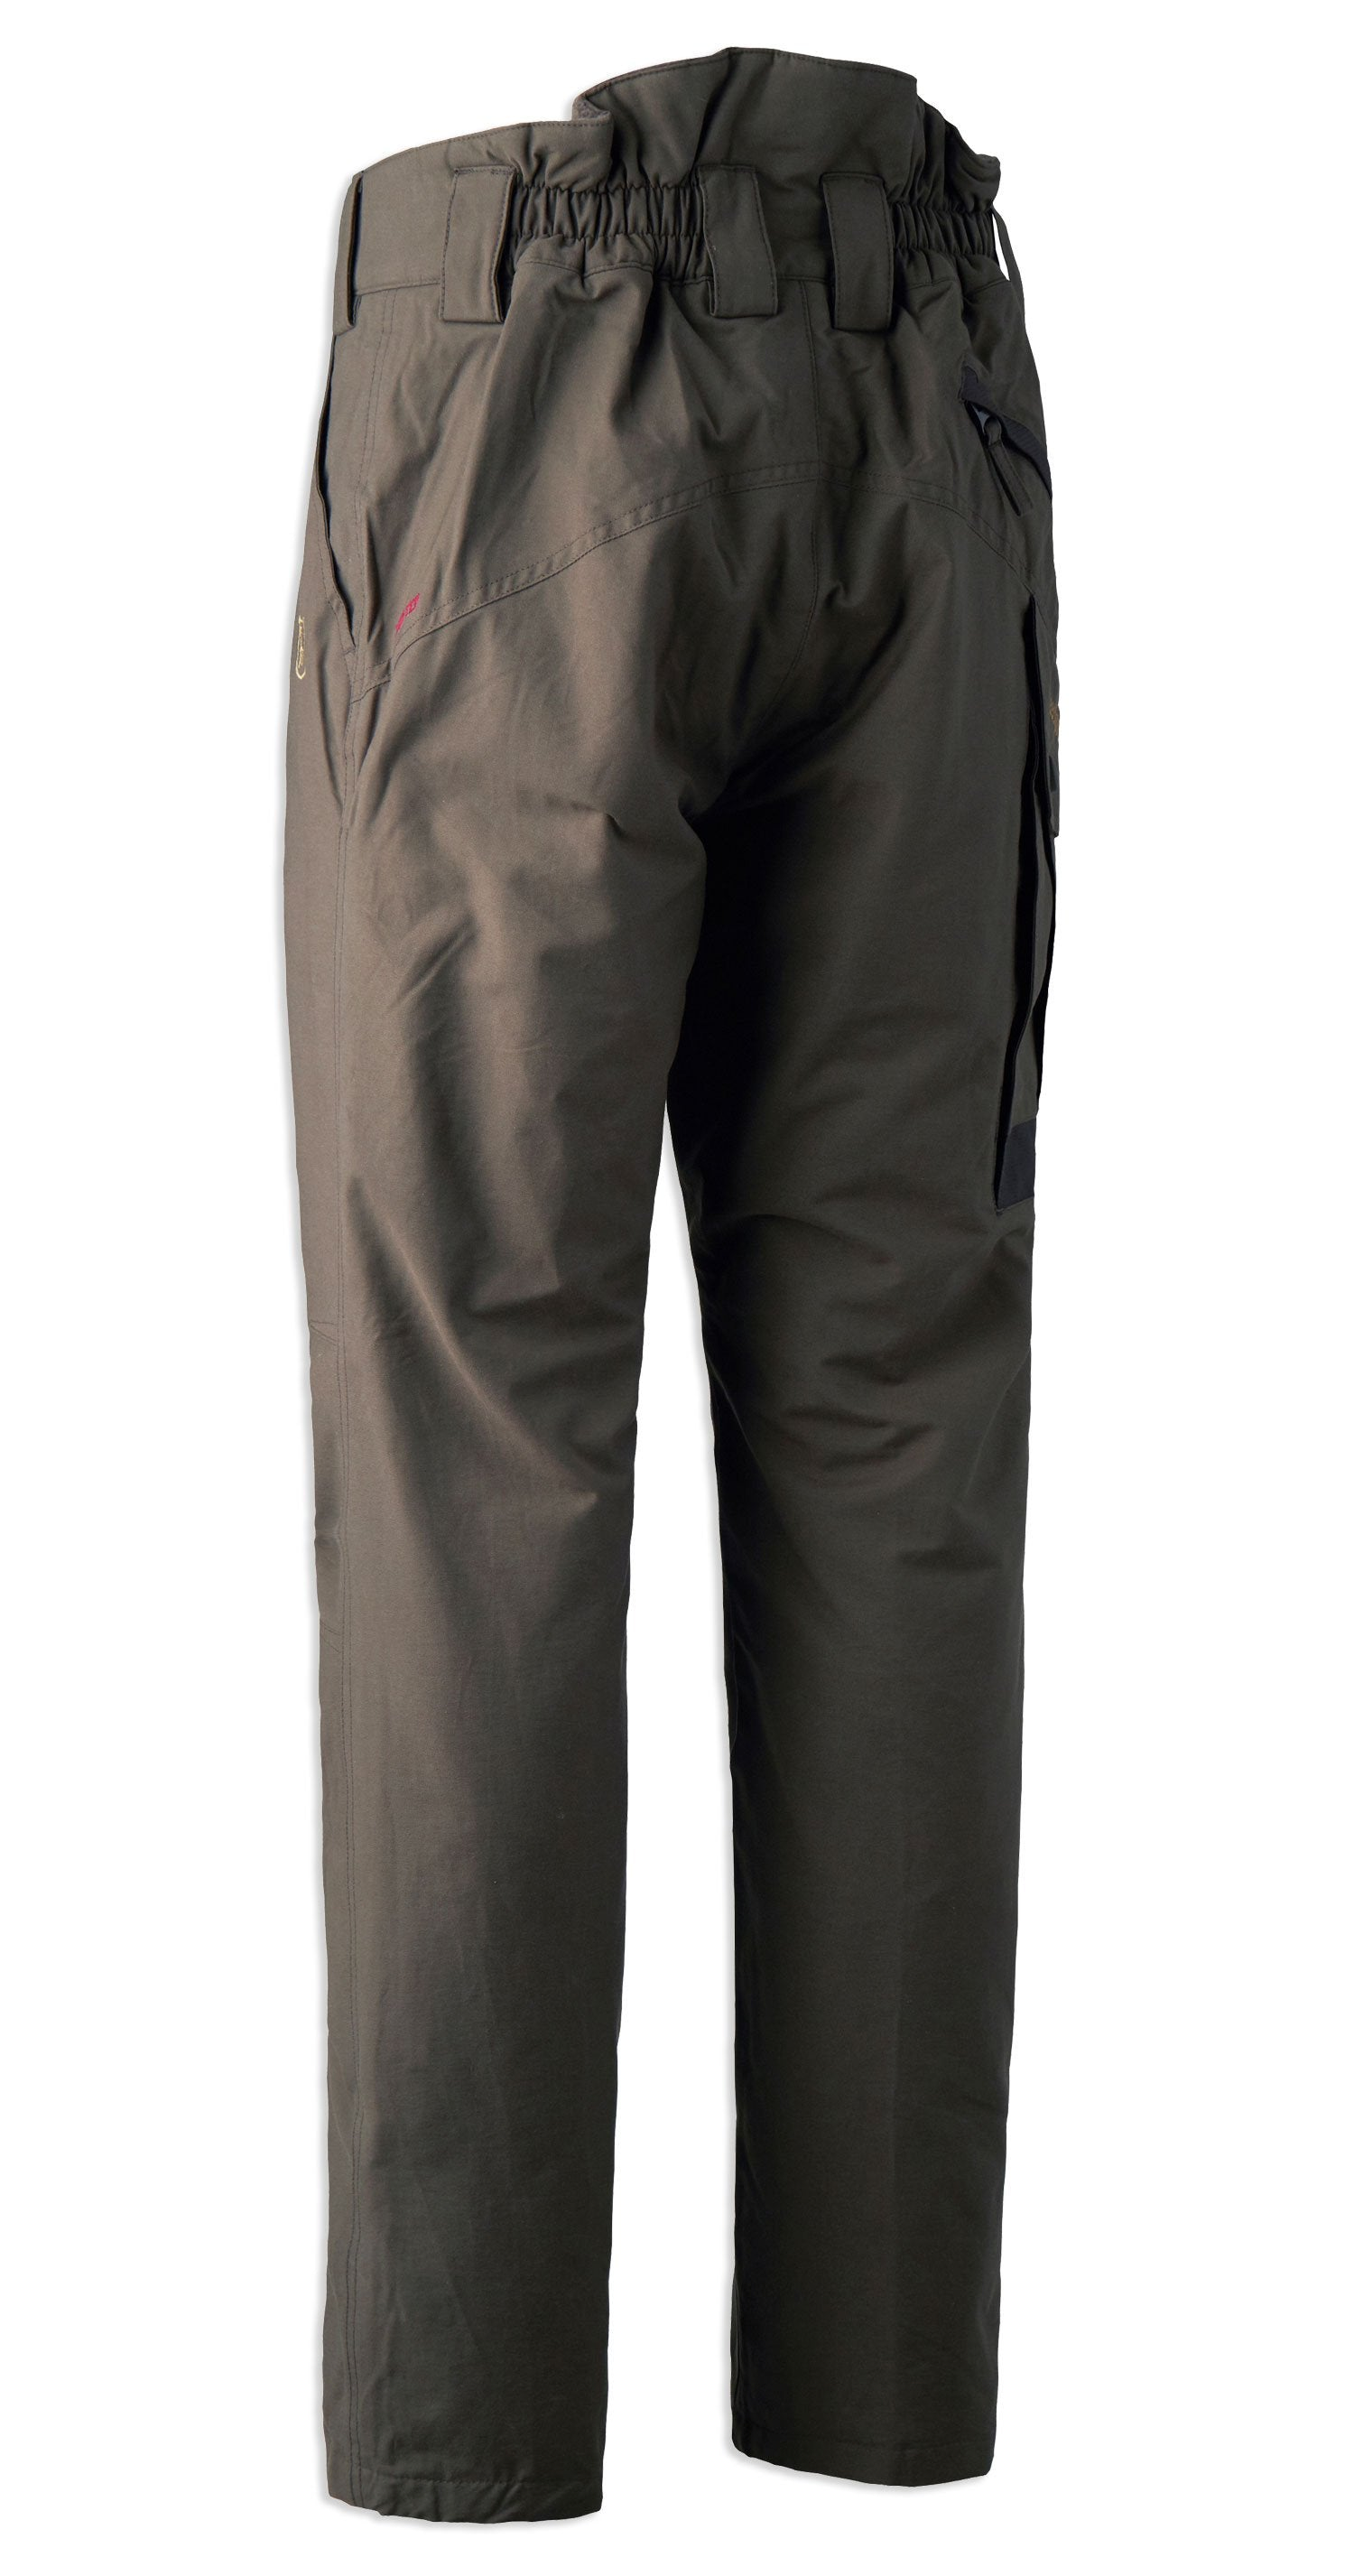 Back View Deerhunter Upland Trousers